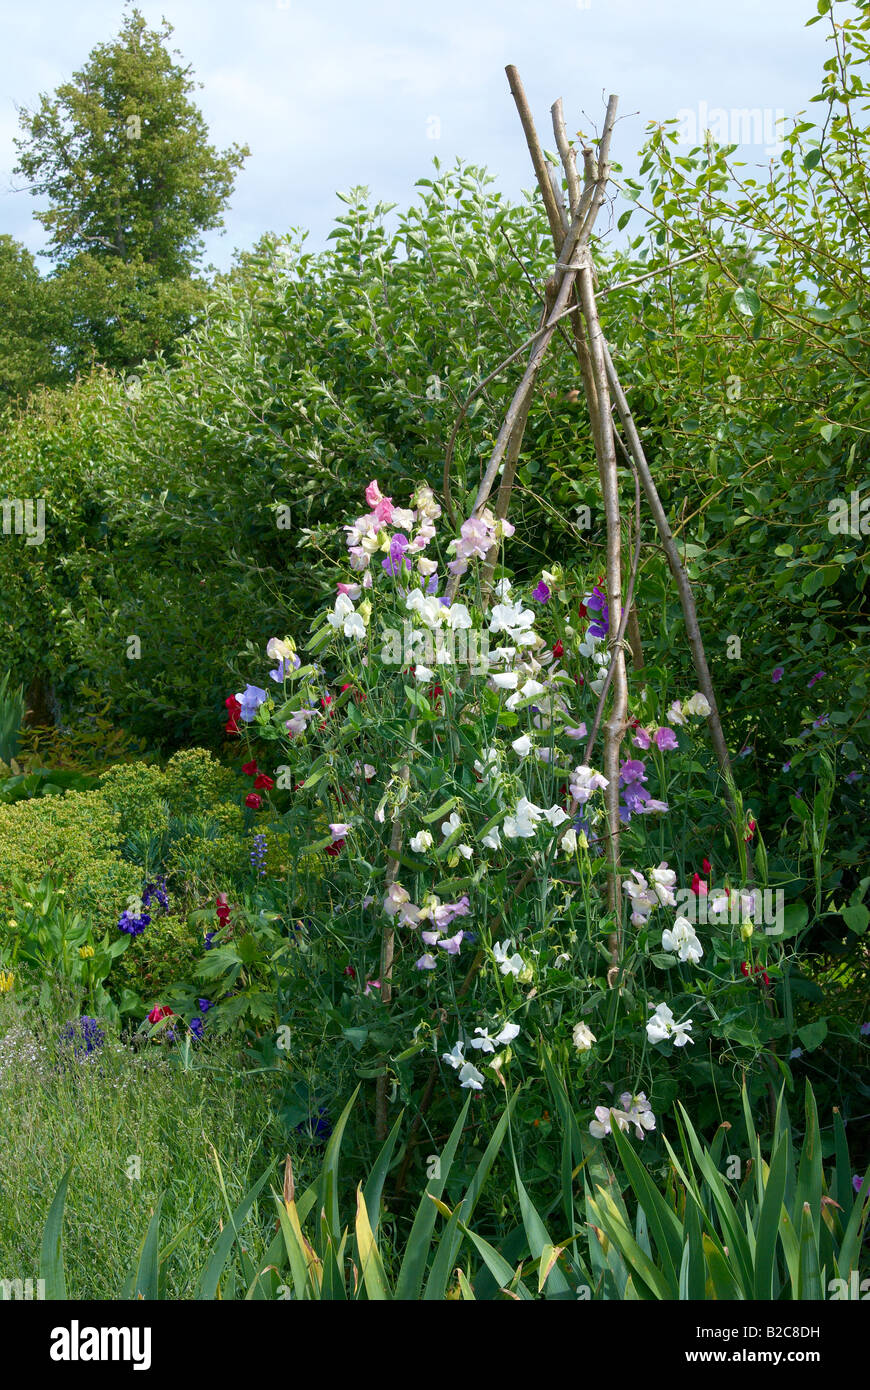 Traditional English Garden With Sweet Peas Growing On A Hazel Stick Wigwam.